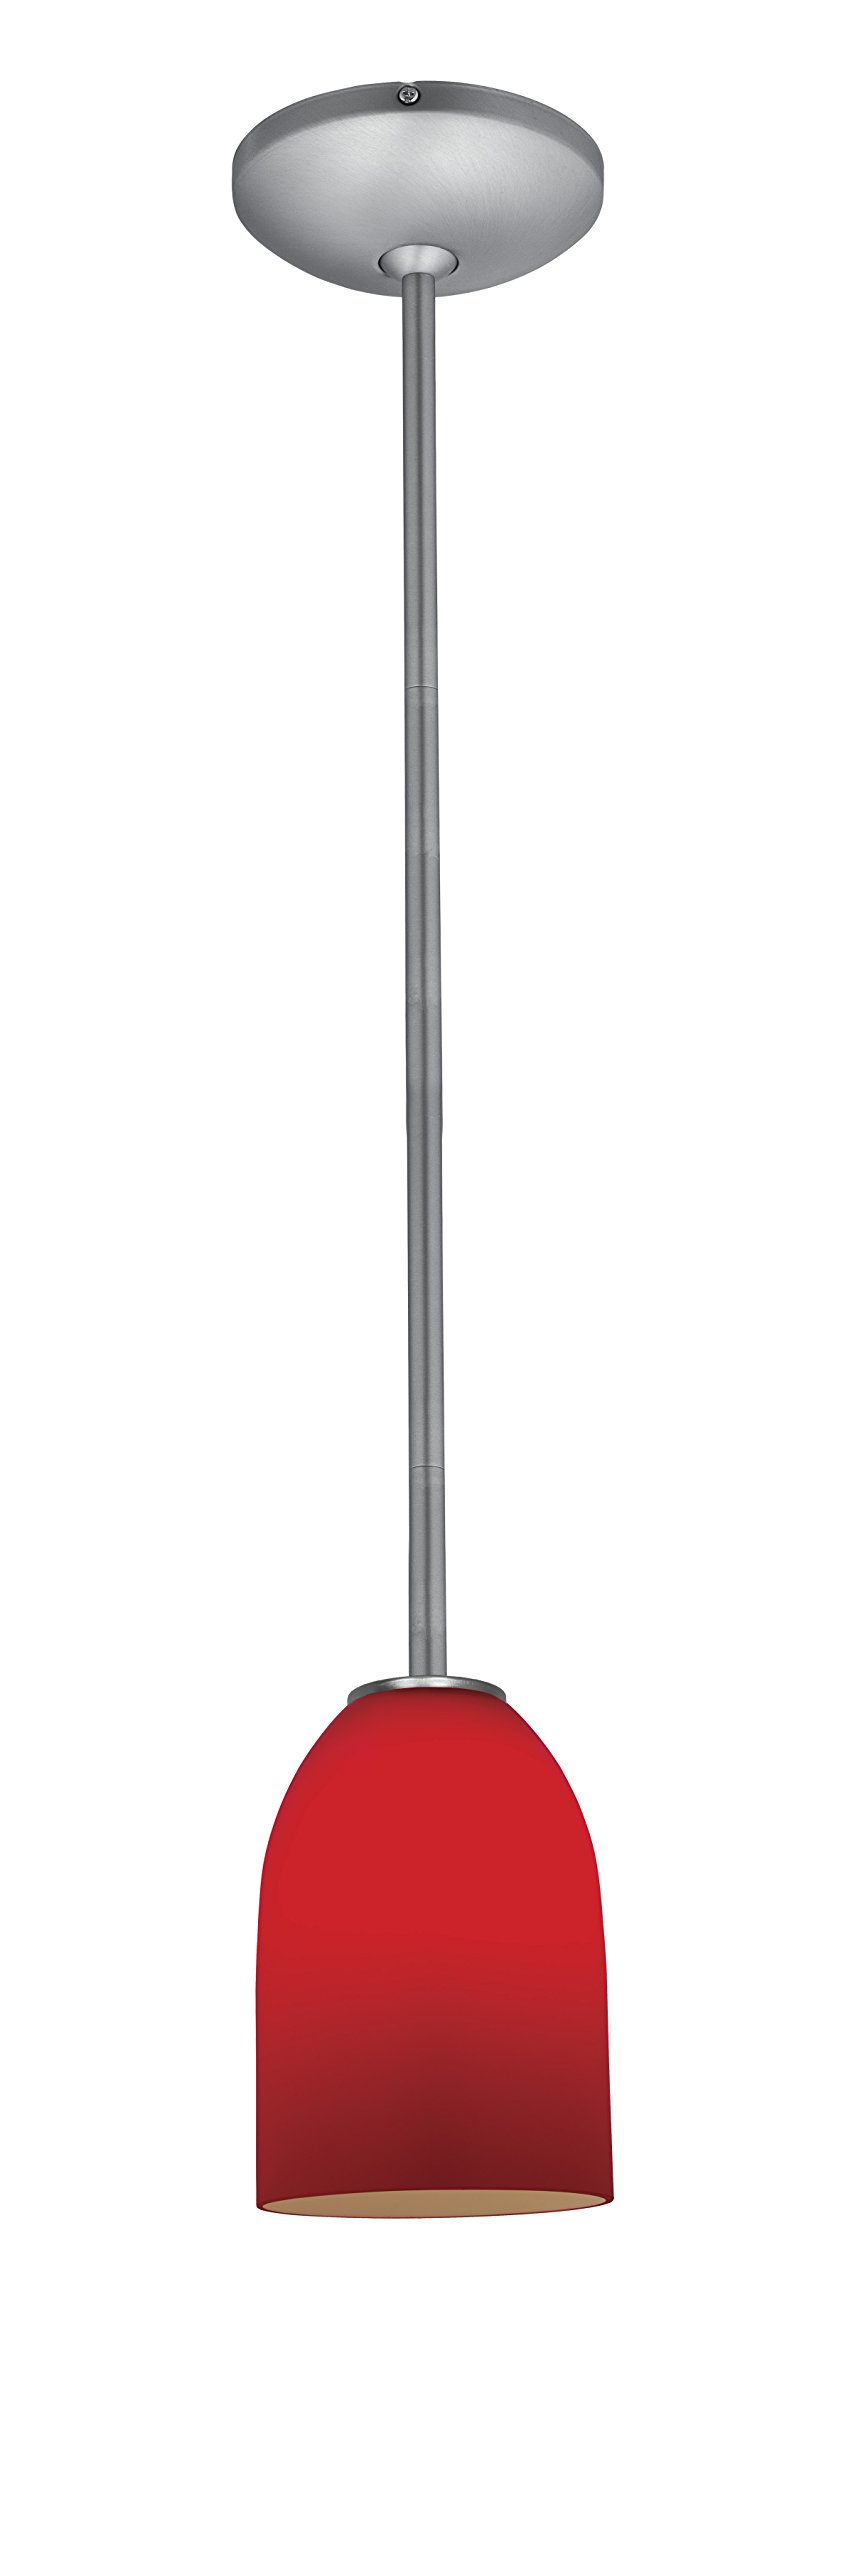 Champagne Glass Pendant - 1-Light Pendant - Rods - Brushed Steel Finish - Red Glass Shade